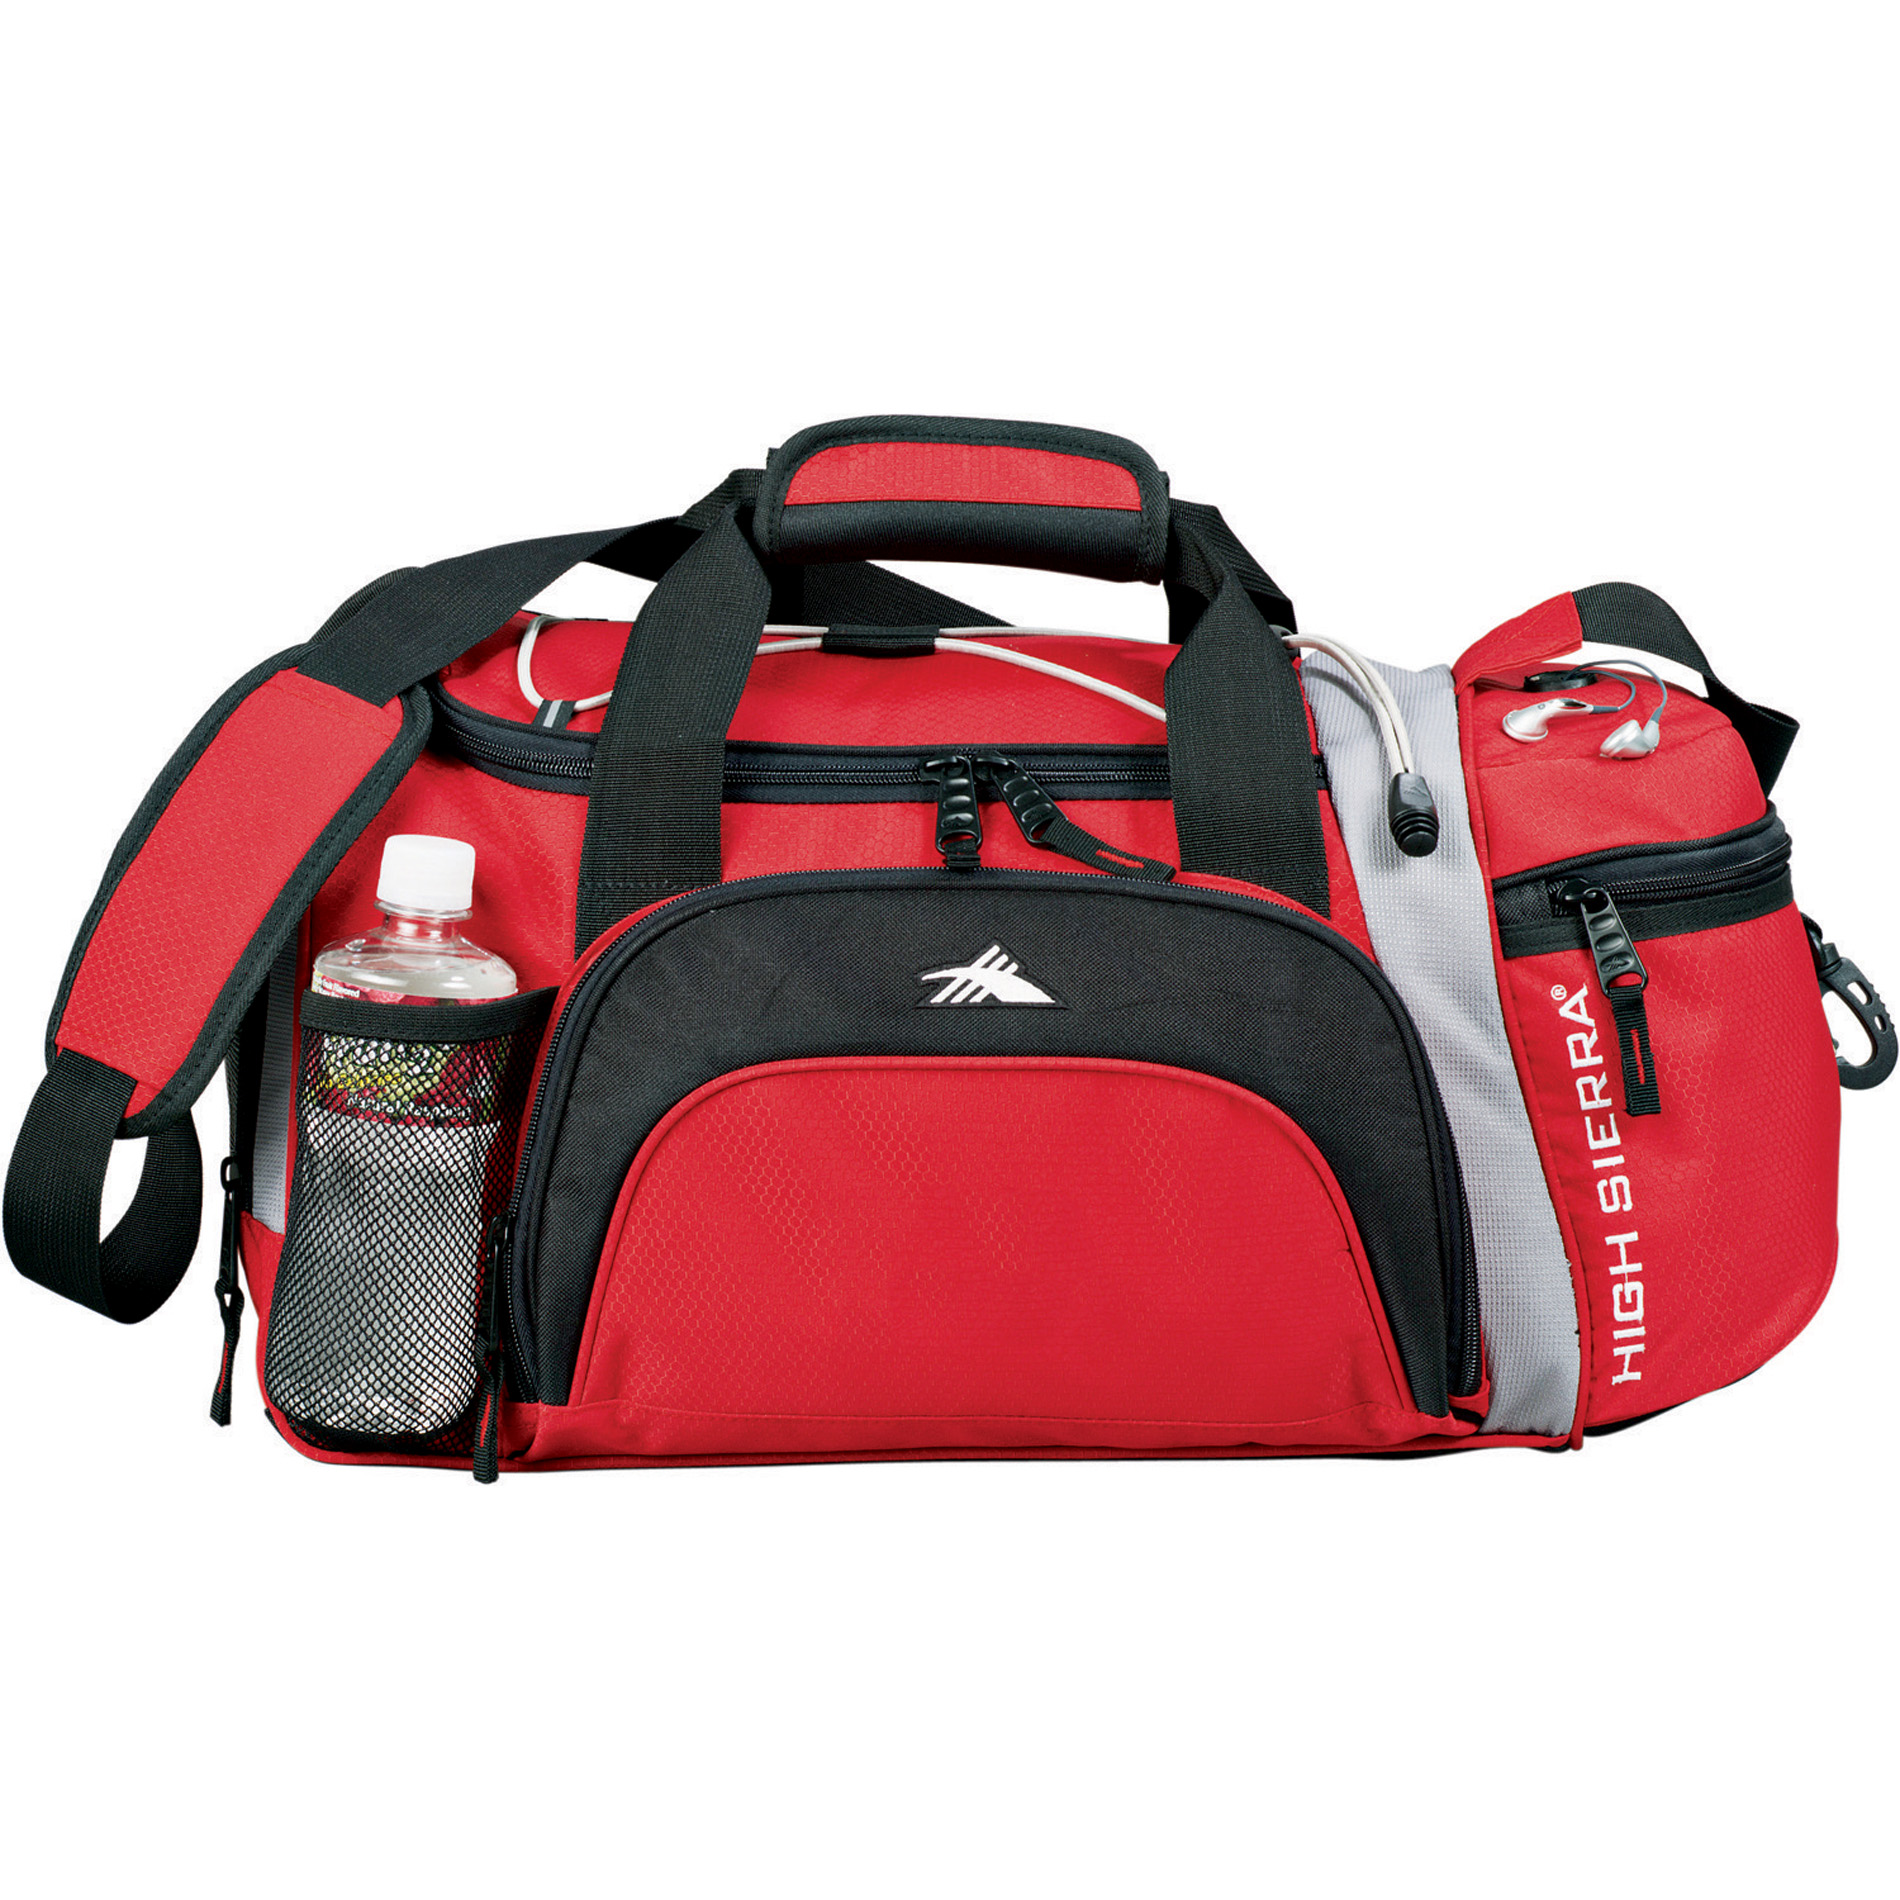 "High Sierra 8050-80 - 22"" Switch Blade Sport Duffel Bag"